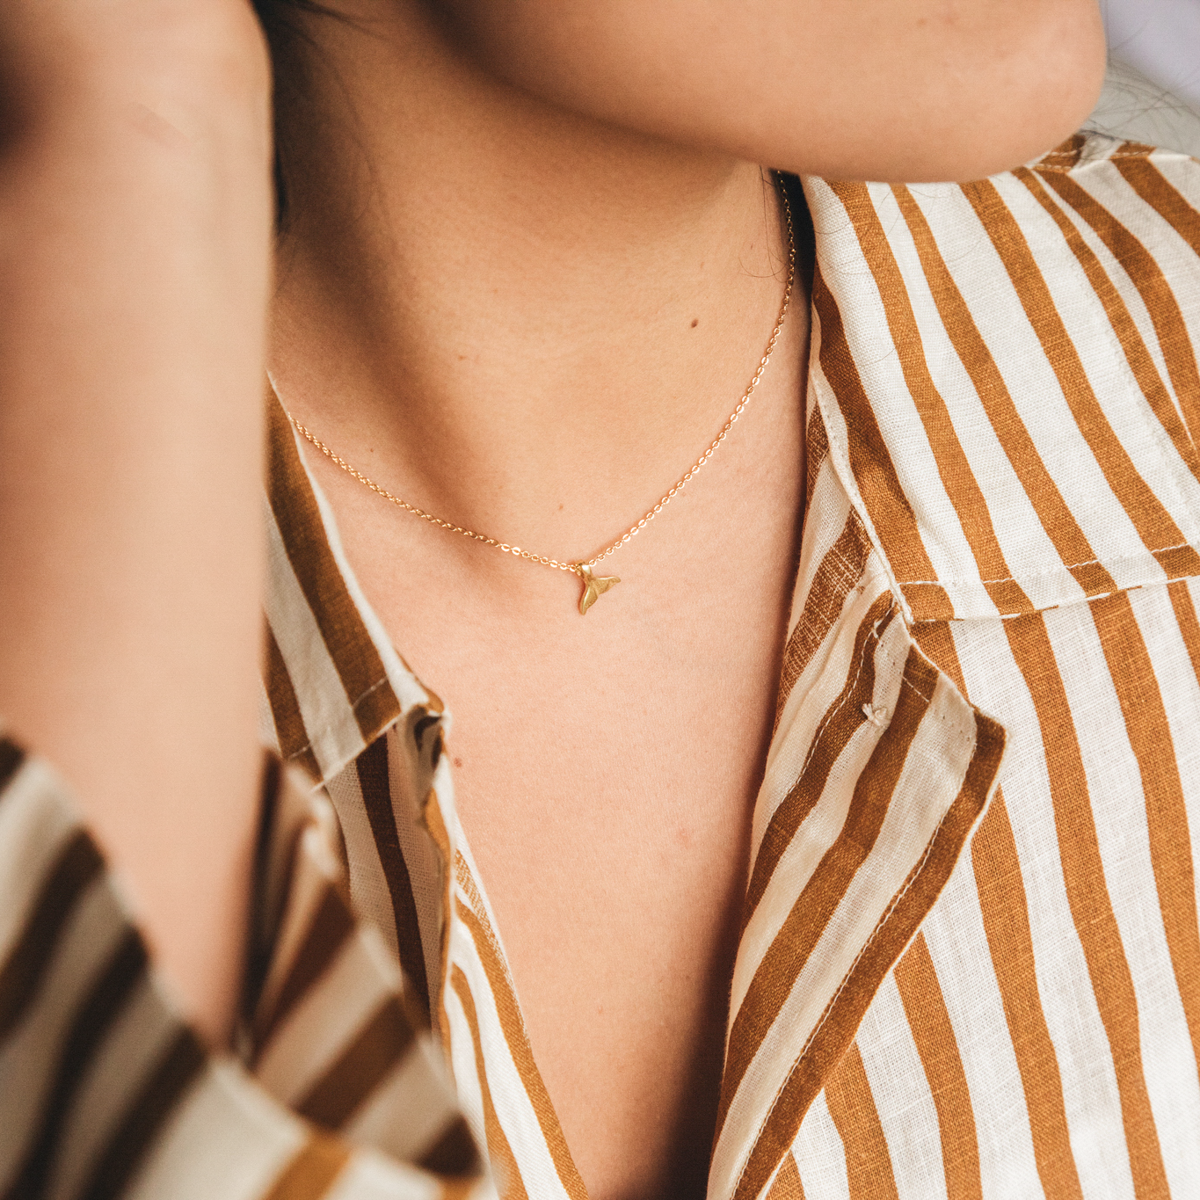 Asri Whale Tail Plated Necklace - Pineapple Island